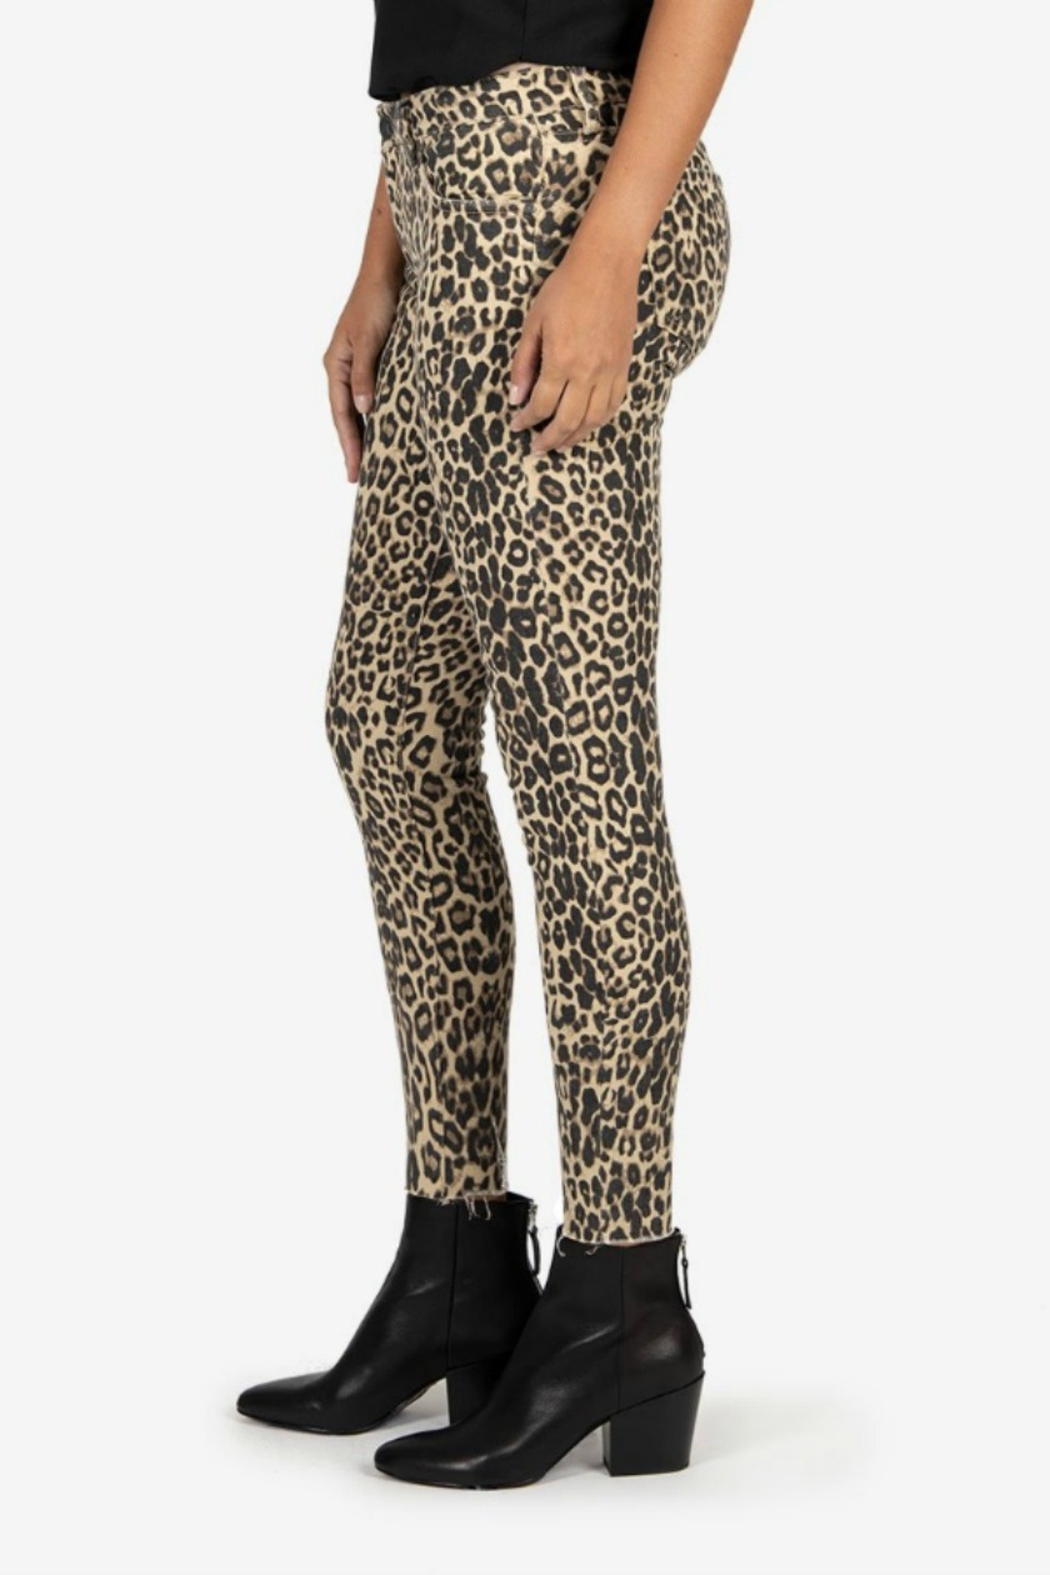 Kut from the Kloth DONNA LEOPARD - Front Full Image